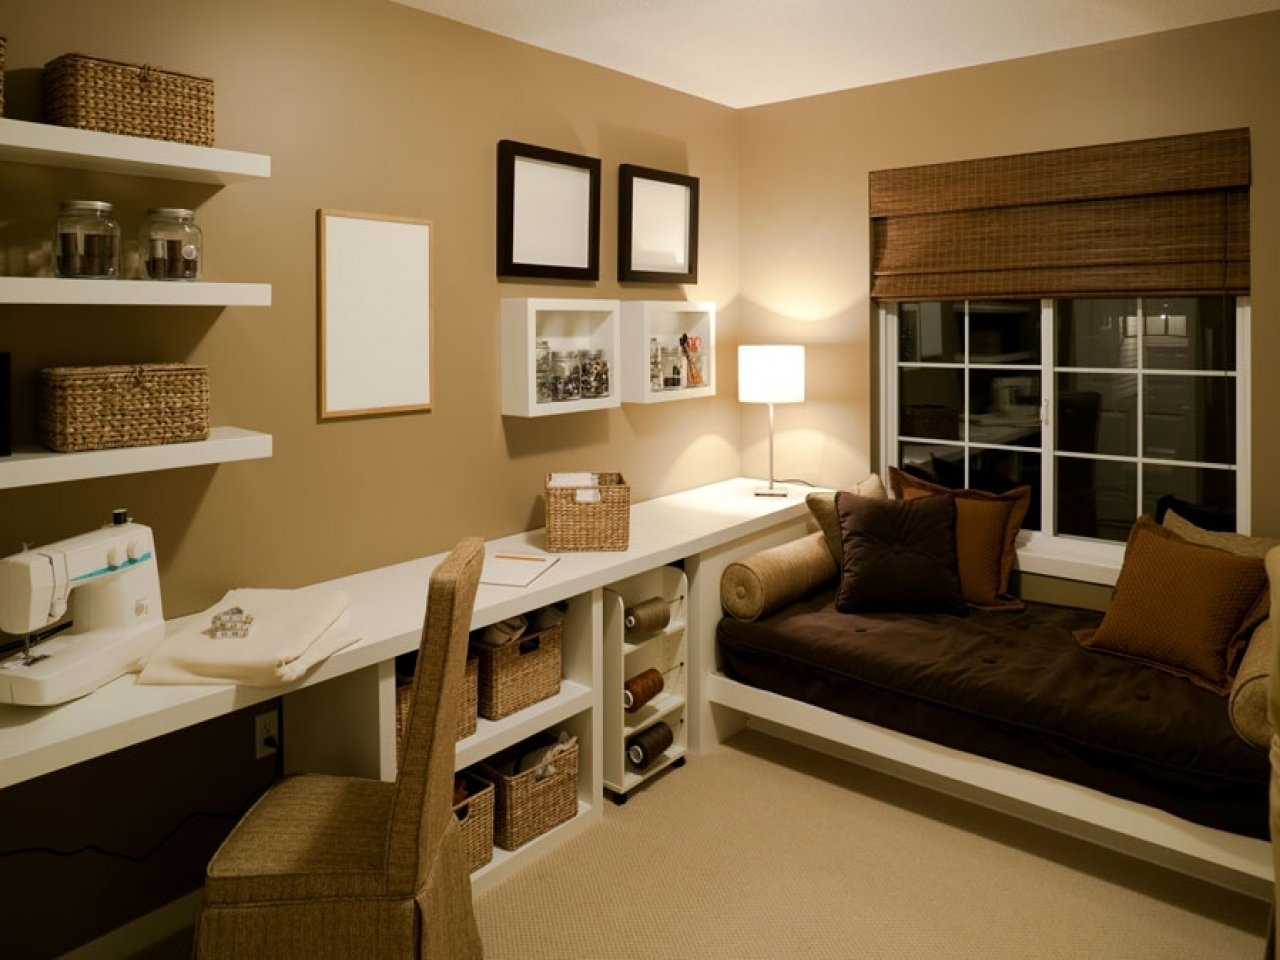 home office and guest room.  Room 10 Ideal Home Office Guest Room Ideas Home Office Spare Bedroom E280a2  Ideas In And U